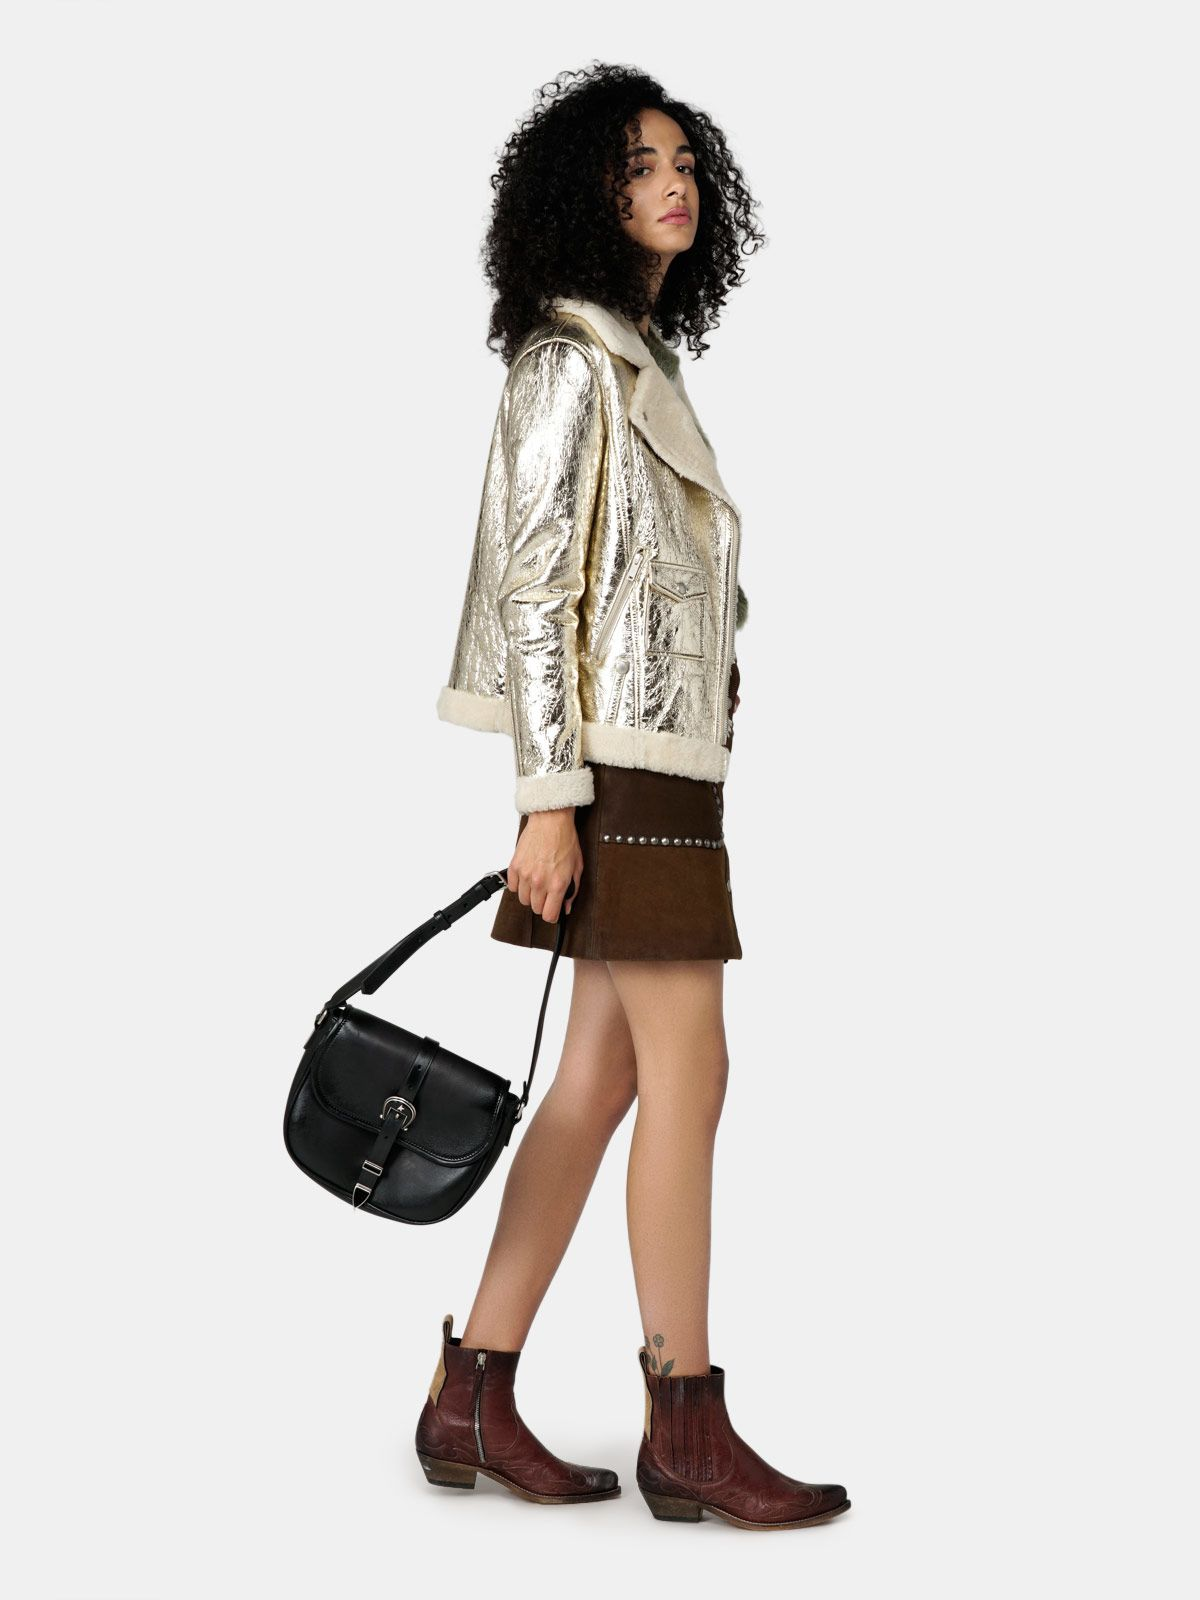 Golden Goose - Assia sheepskin jacket in laminated leather with shearling lining in